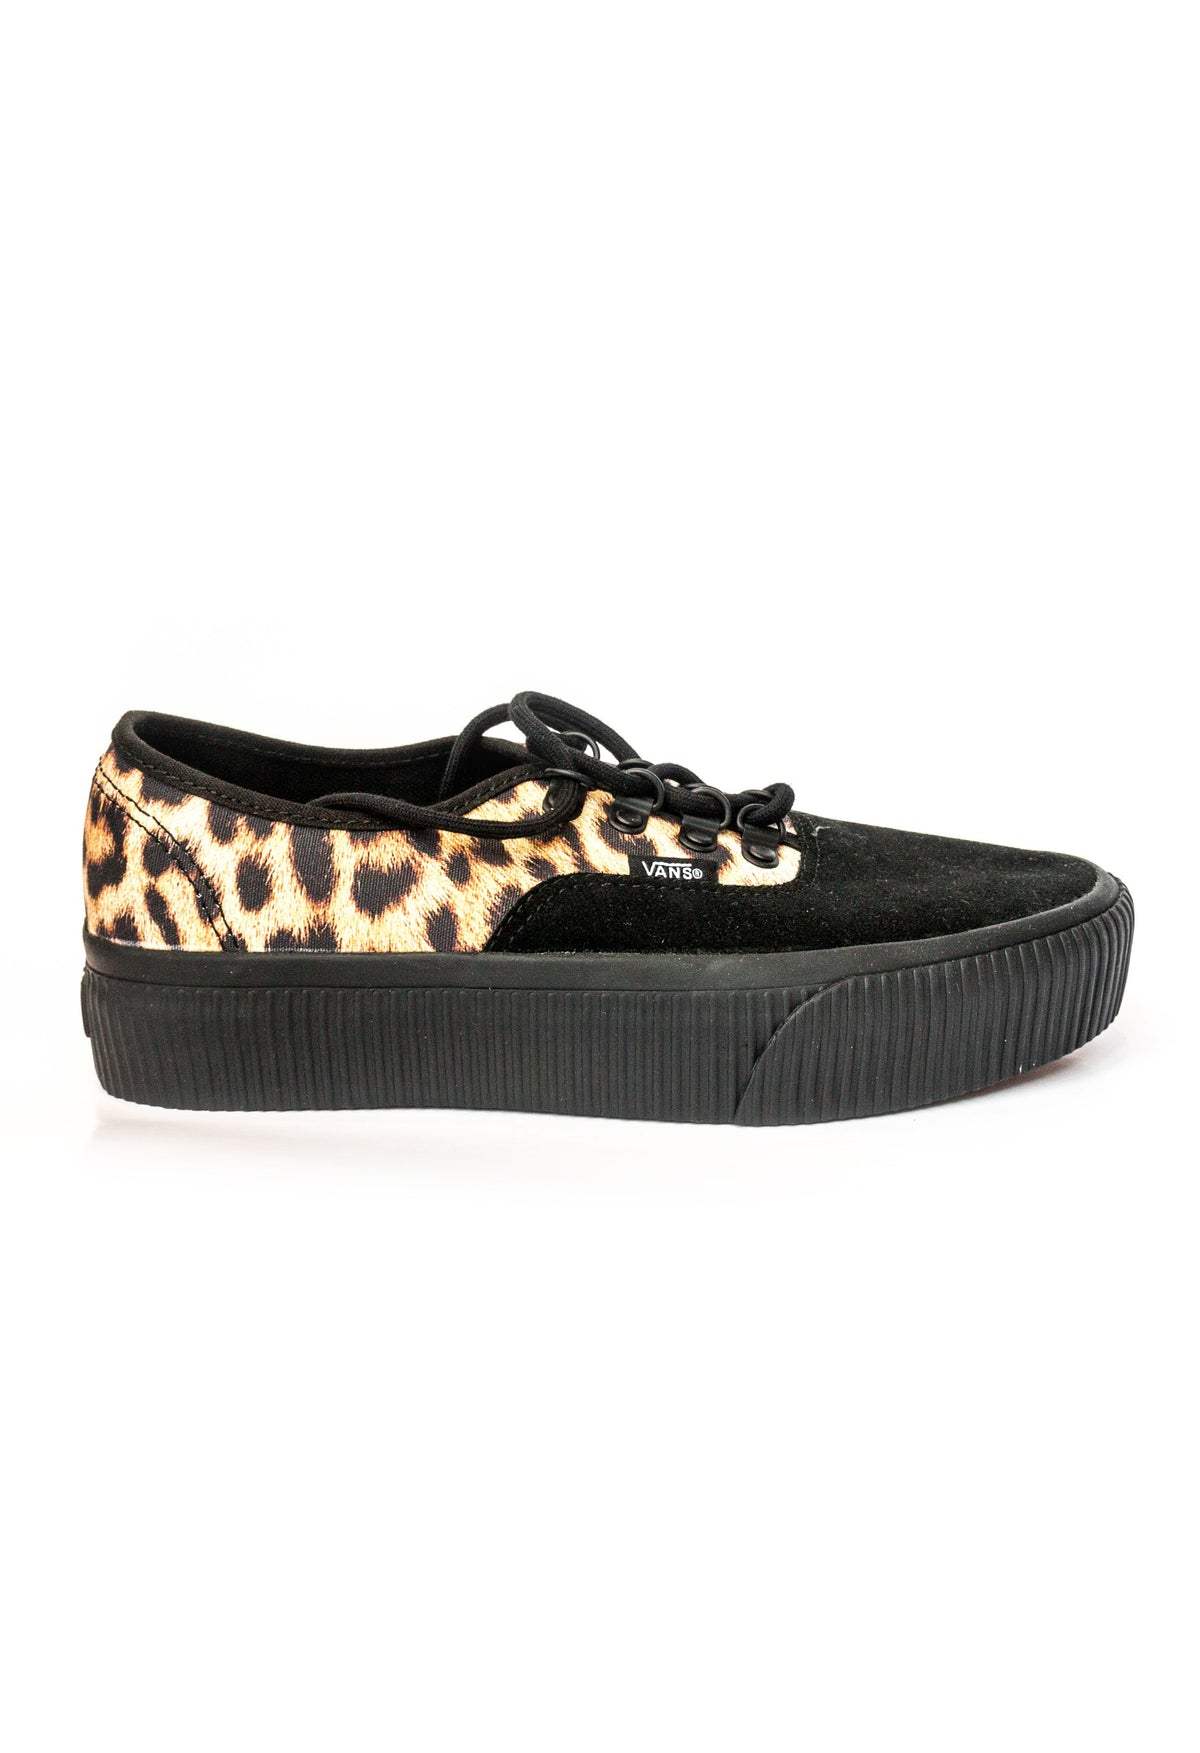 d366876c94d7 Authentic Platform Black and Leopard Print Canvass Vans Stockists New  Zealand Buy Online Vans Skate Shoes